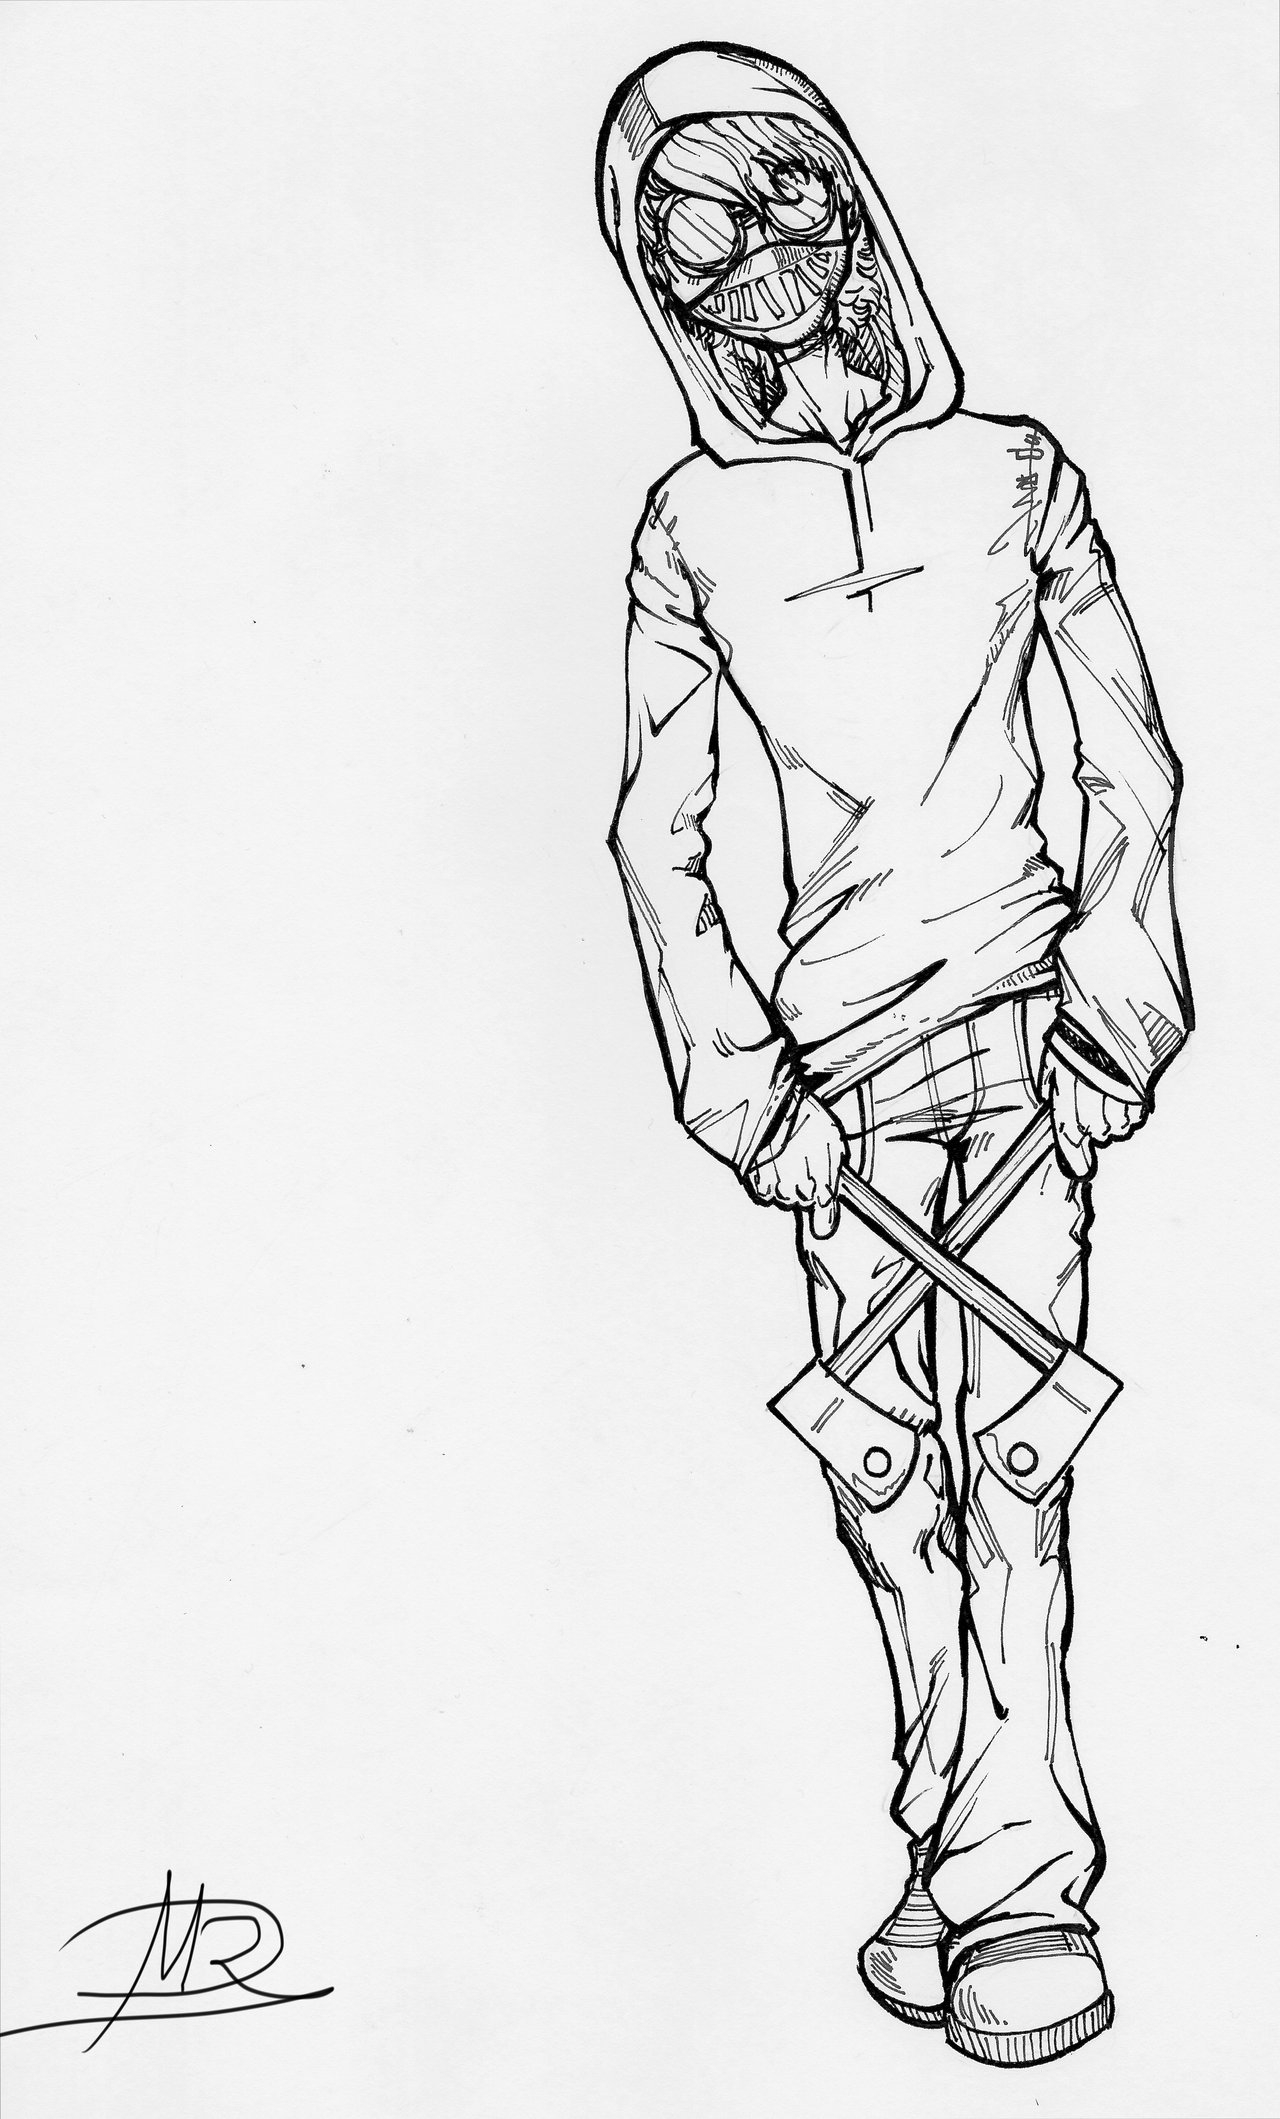 24 Creepypasta Coloring Pages Collections - FREE COLORING PAGES